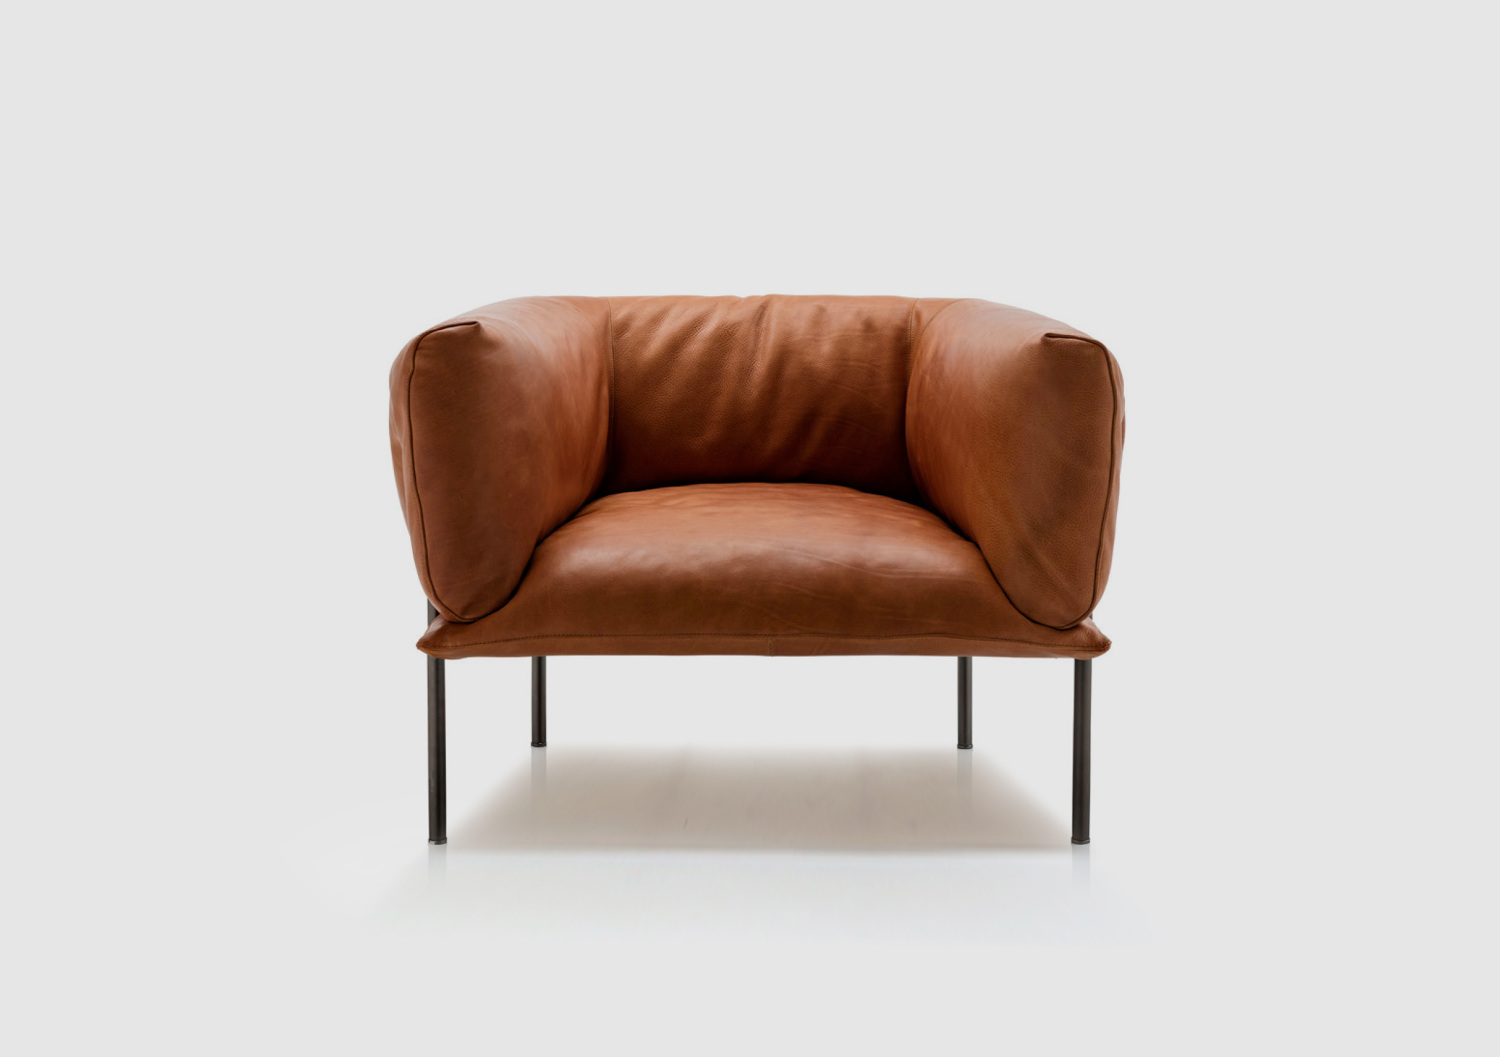 The 'Rondo' armchair by Lucy Kurrein for Trentino Collaborations, manufactured by Molinari.